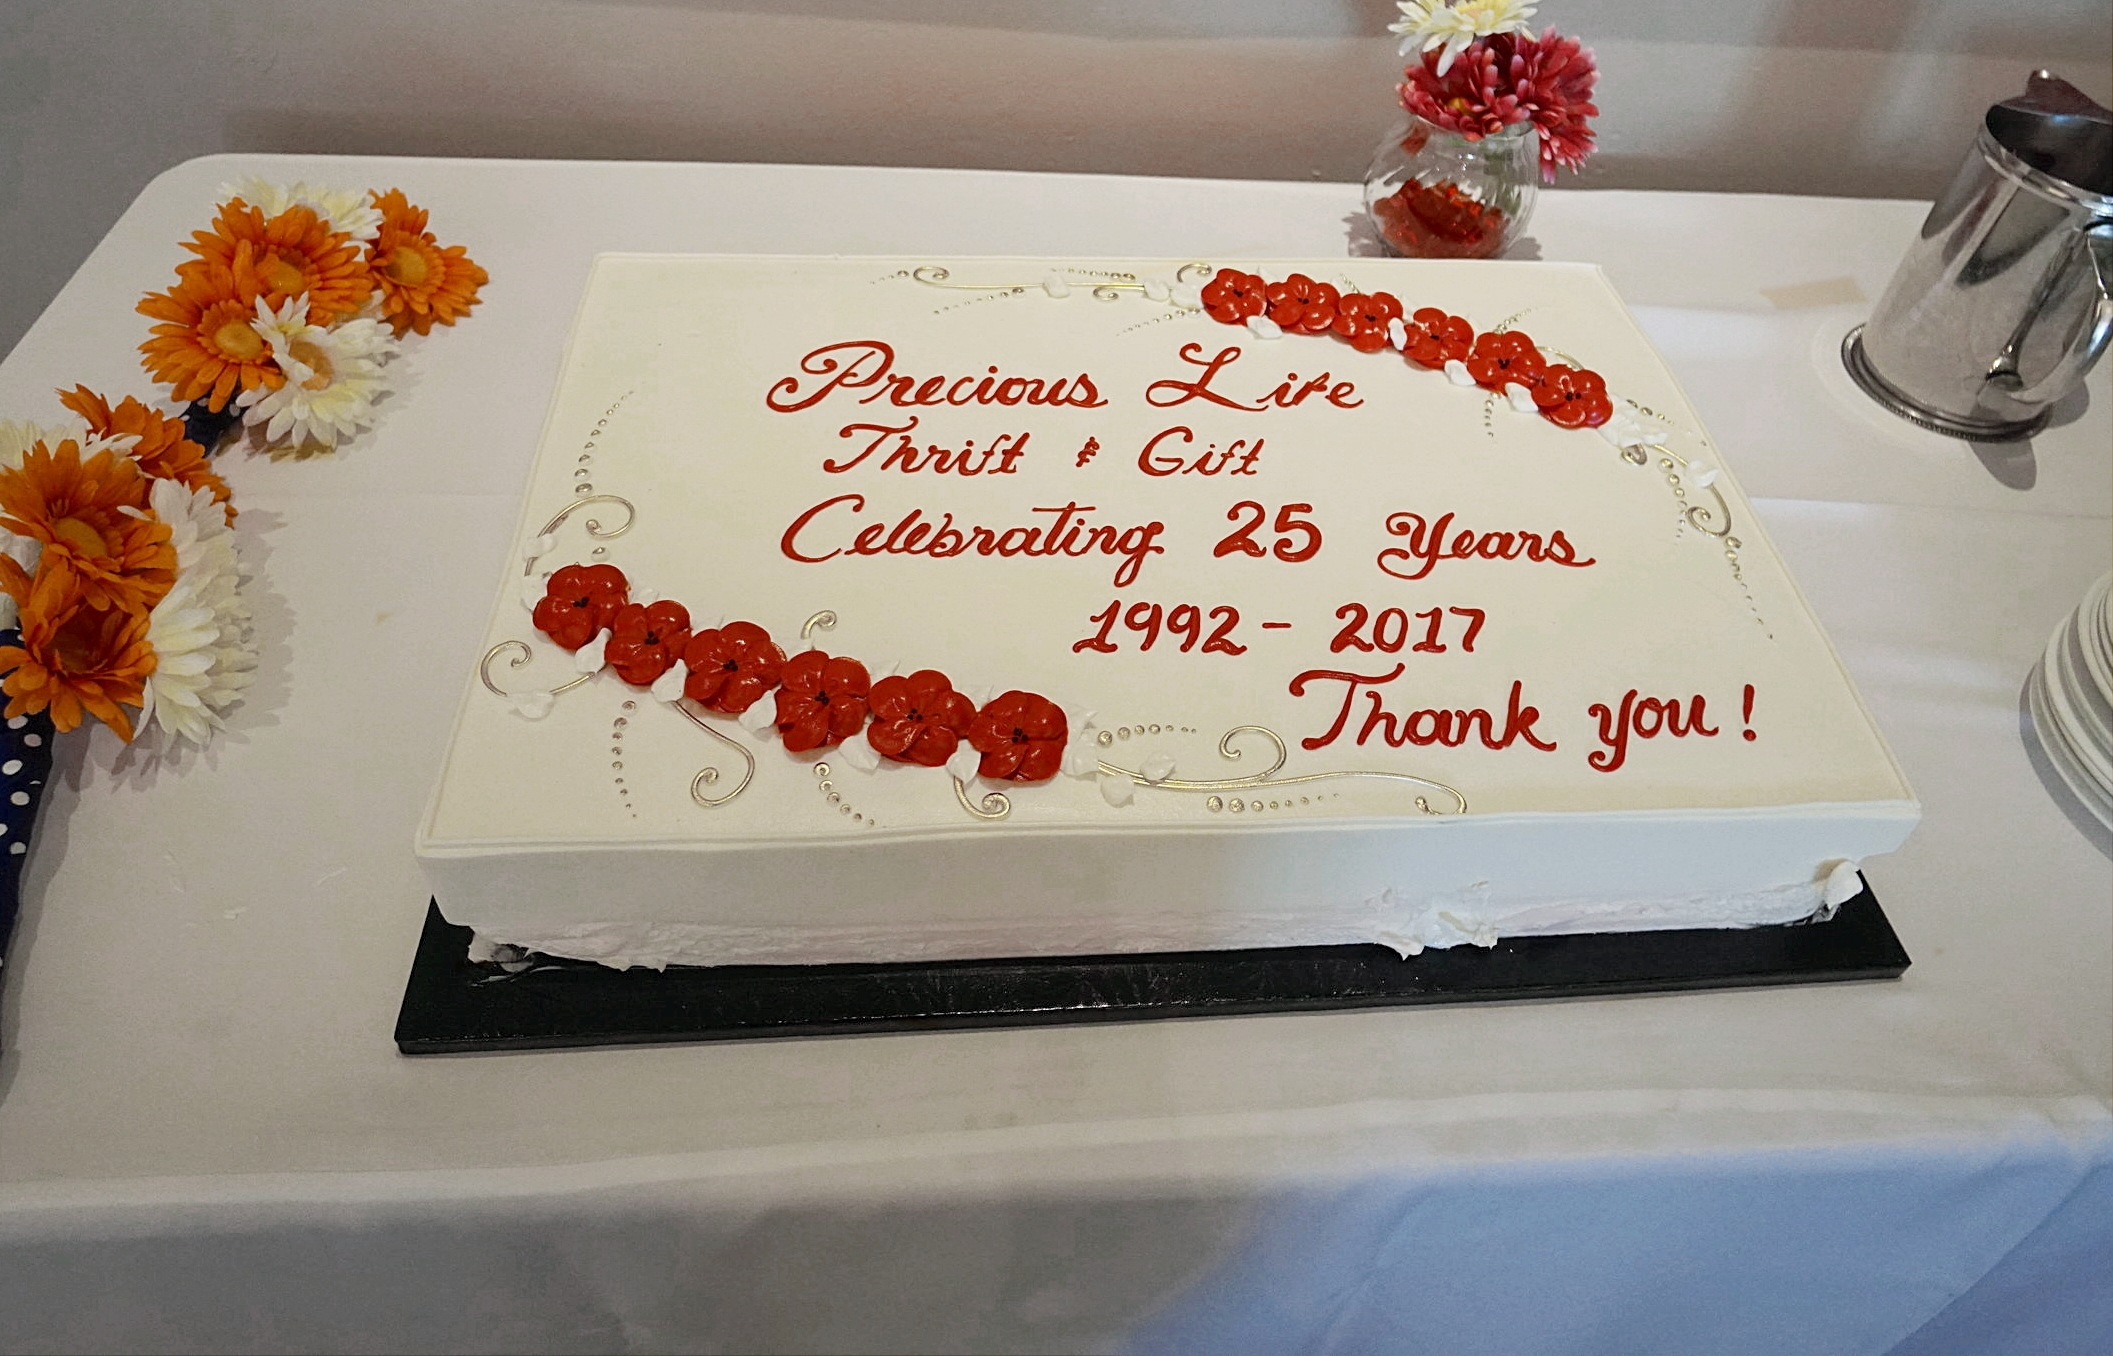 Precious Life Thrift and Gift Shop 25th Anniversary Celebration - Click Here to view more photos